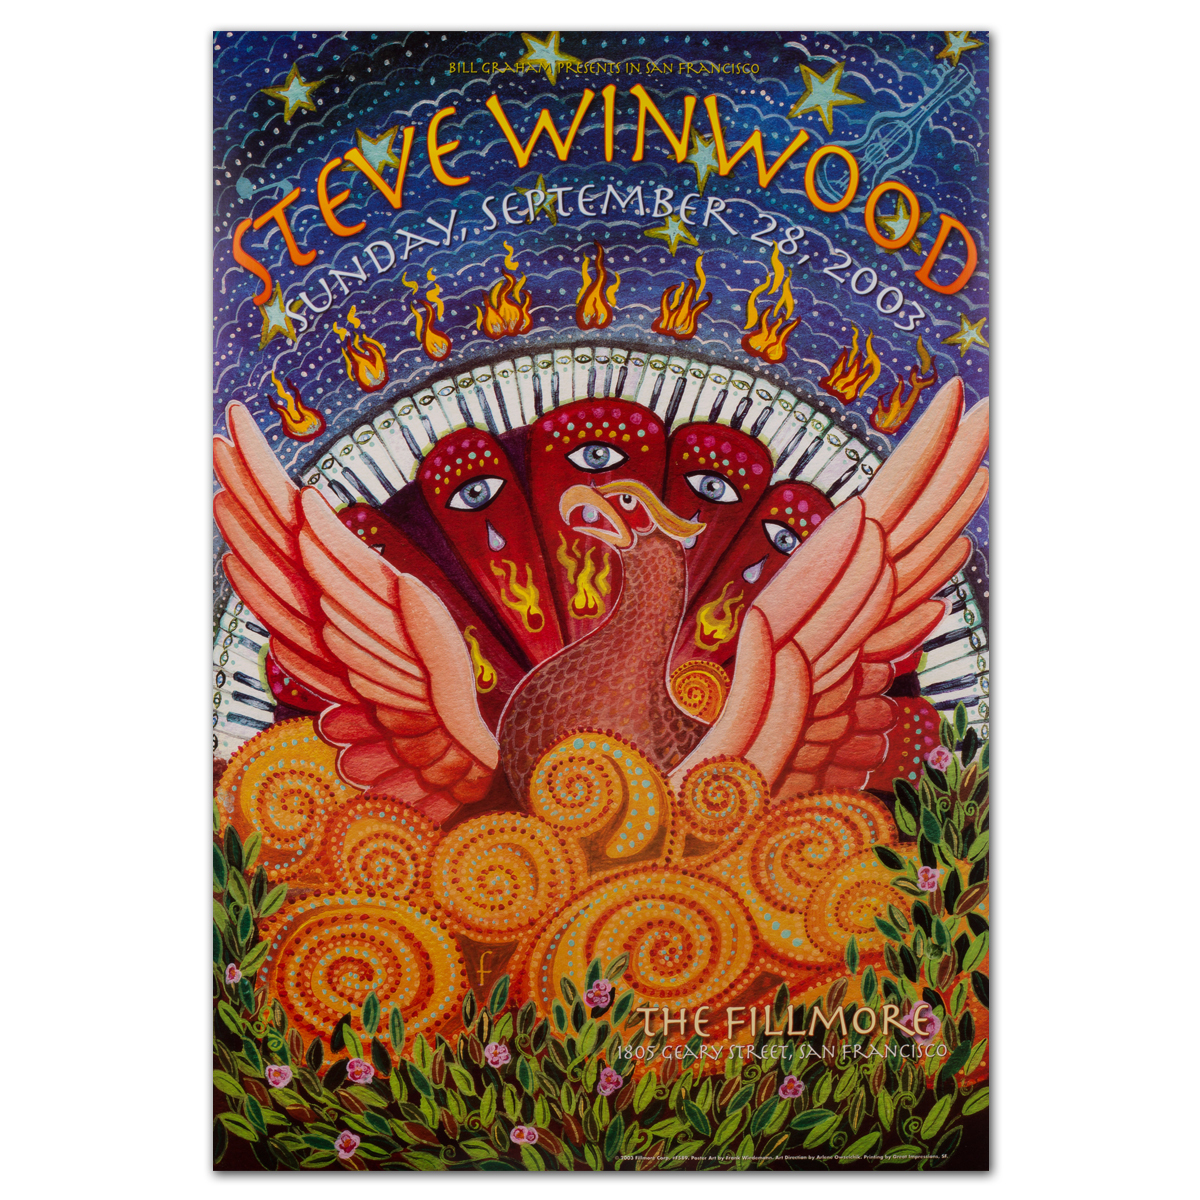 Fillmore steve winwood 9 28 2003 poster shop the for House music 2003